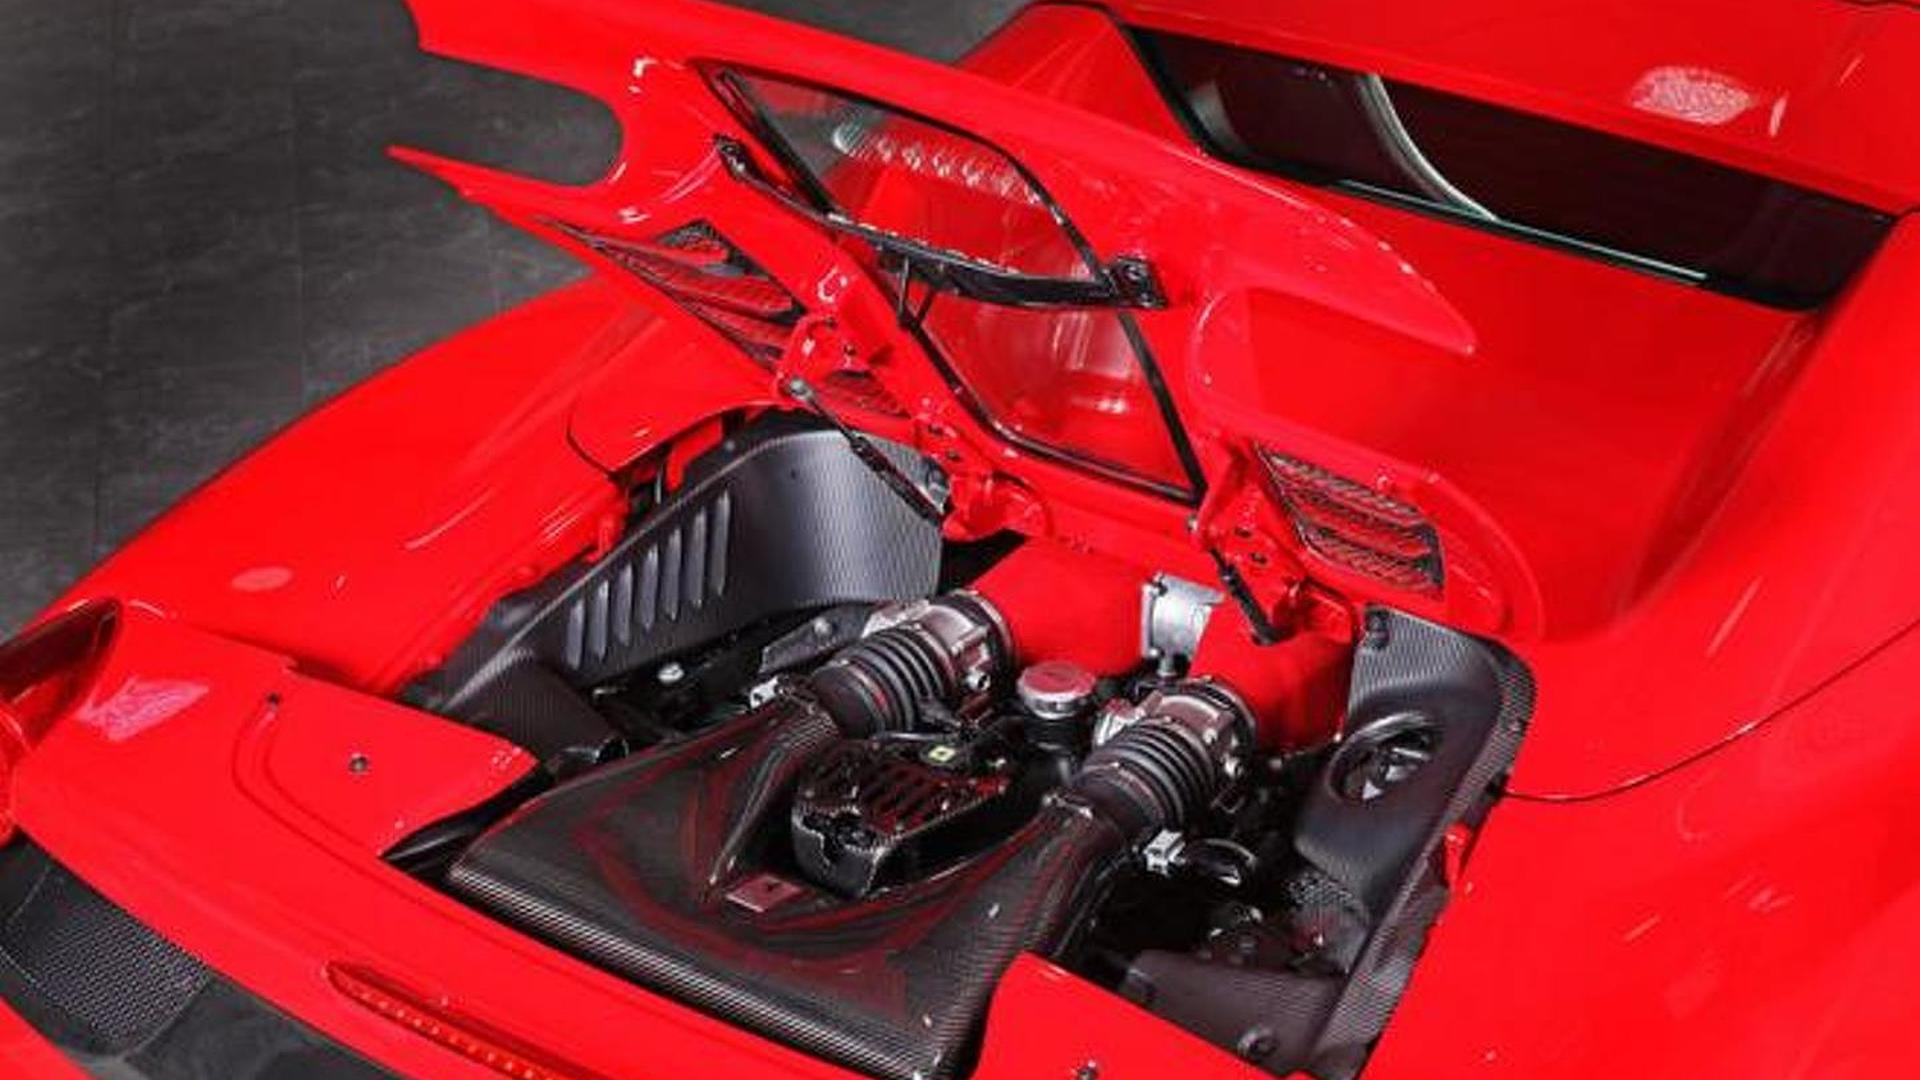 Ferrari 458 Spider gets a carbon fiber engine cover from Capristo